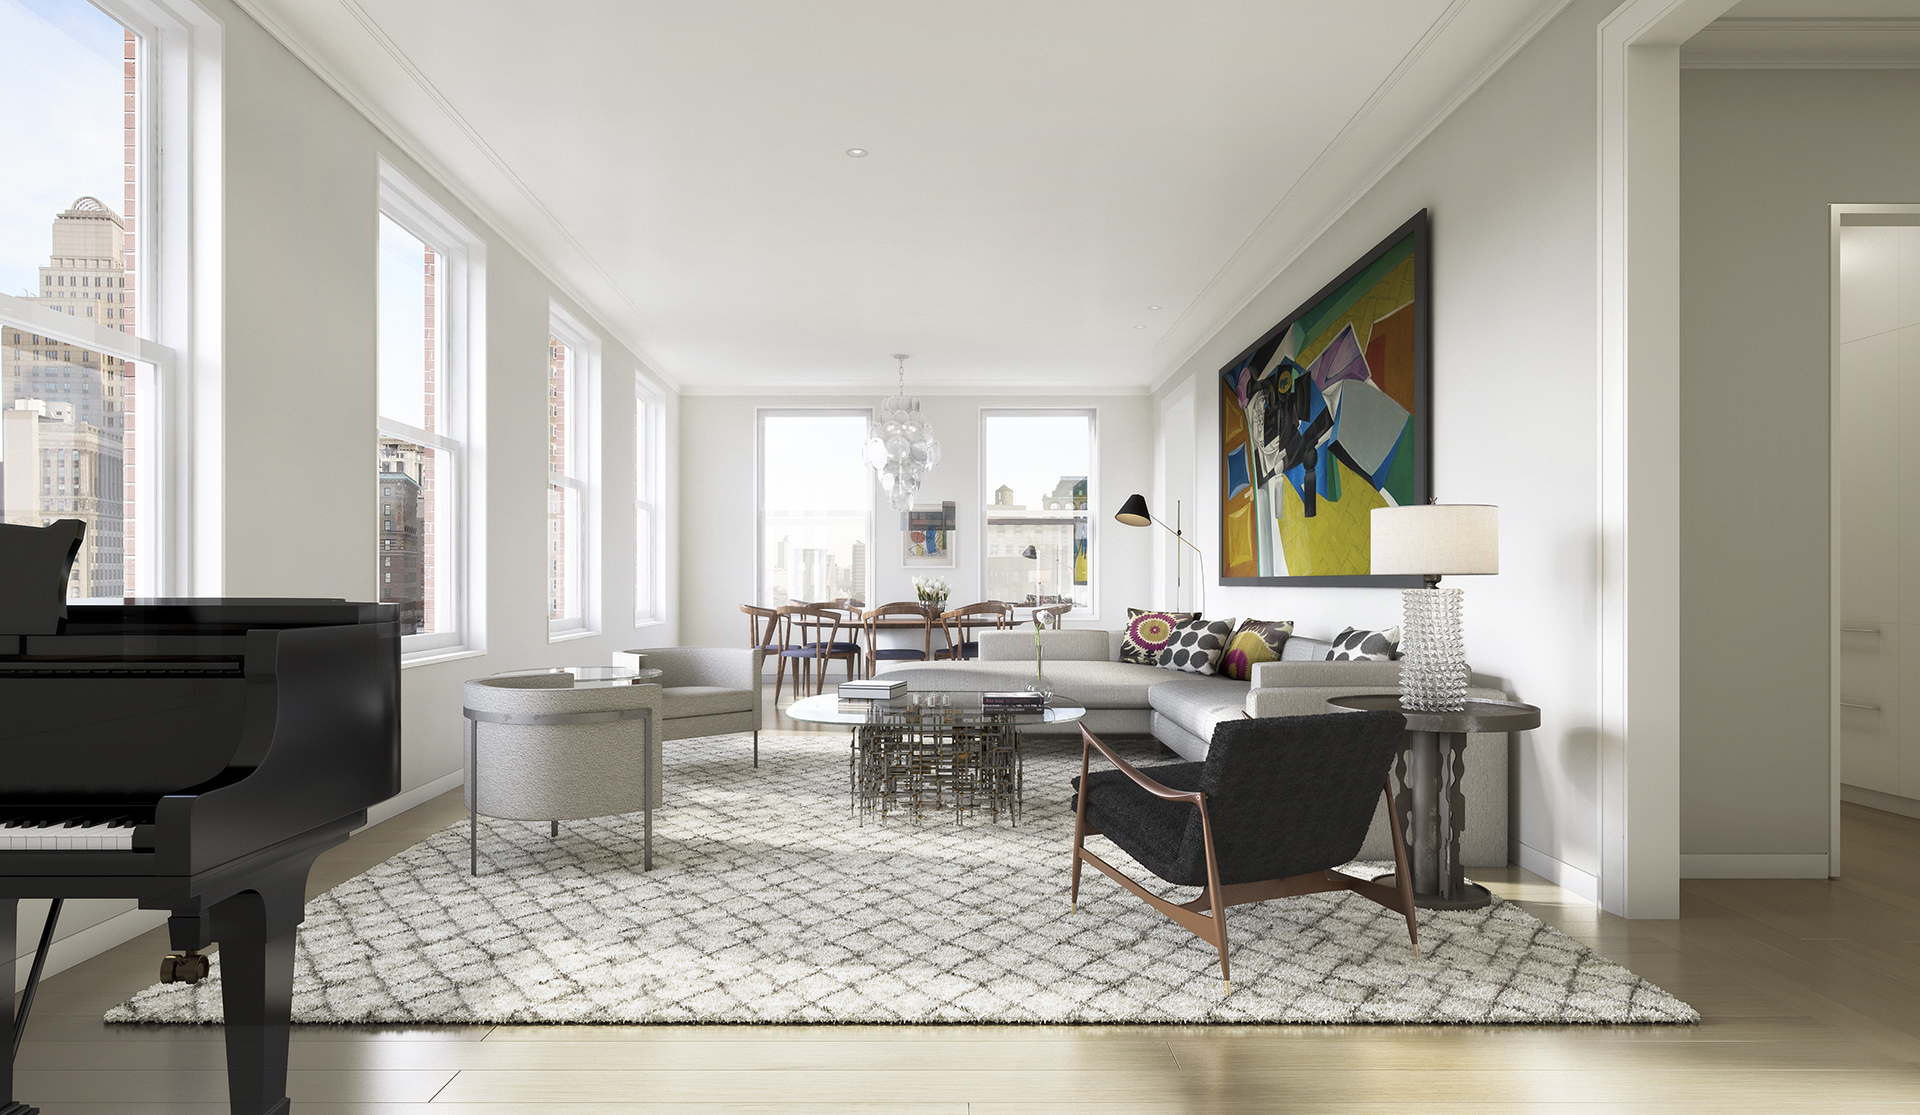 tribeca condos - living room